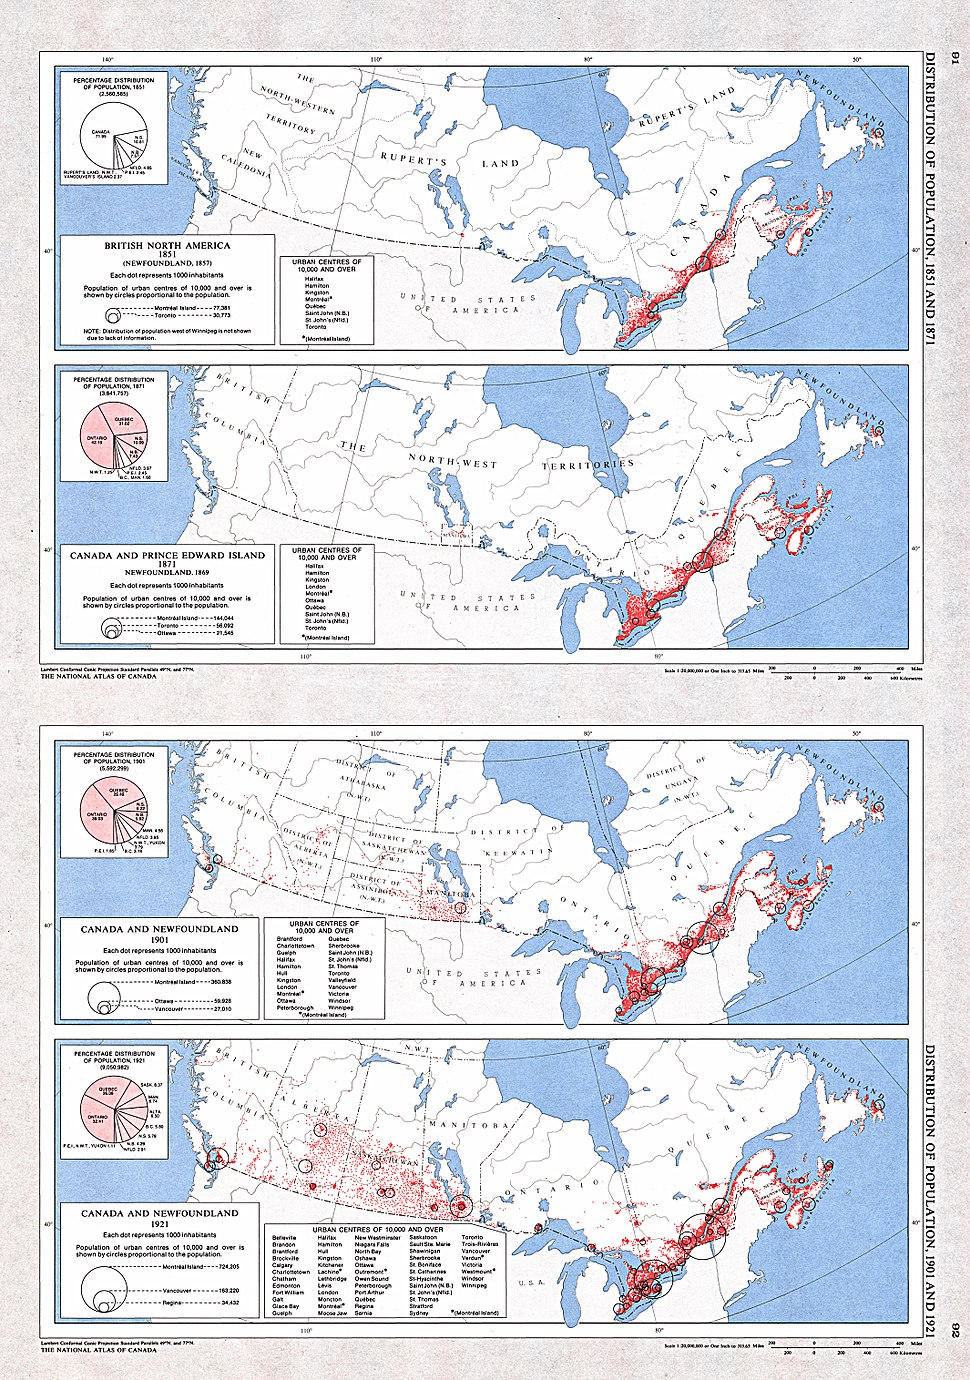 Canadian pop from 1851 to 1921